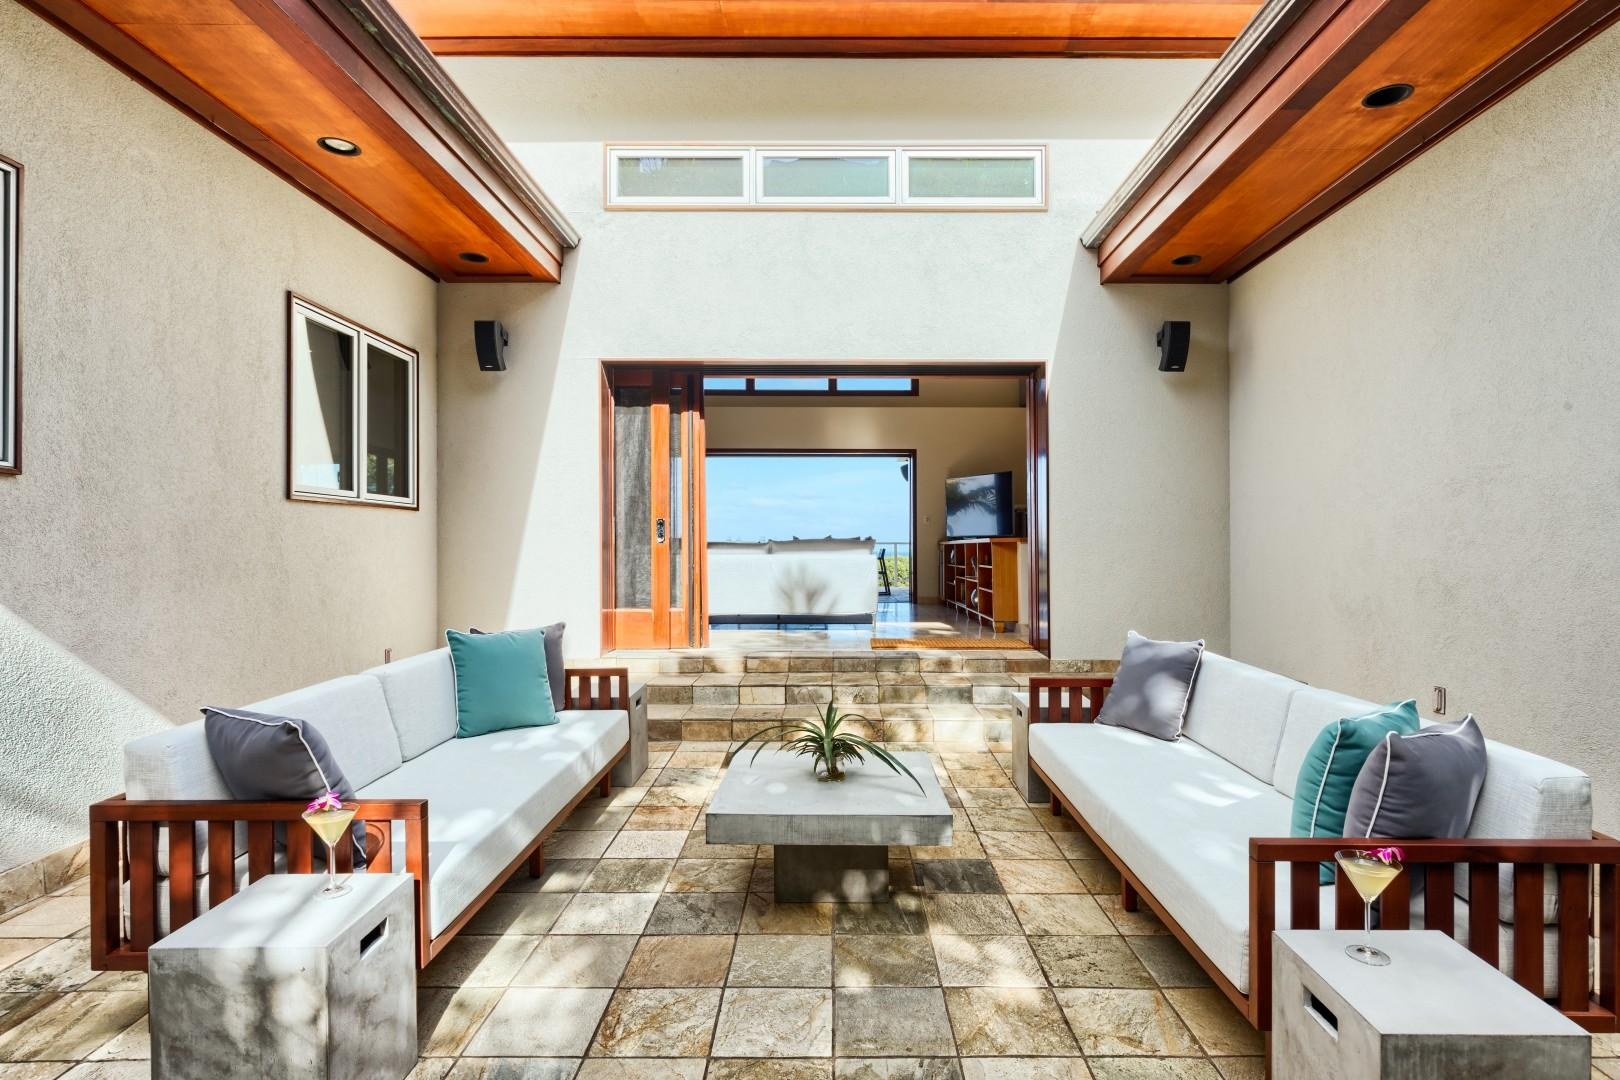 Backyard sitting area, looking out through the house to the ocean.